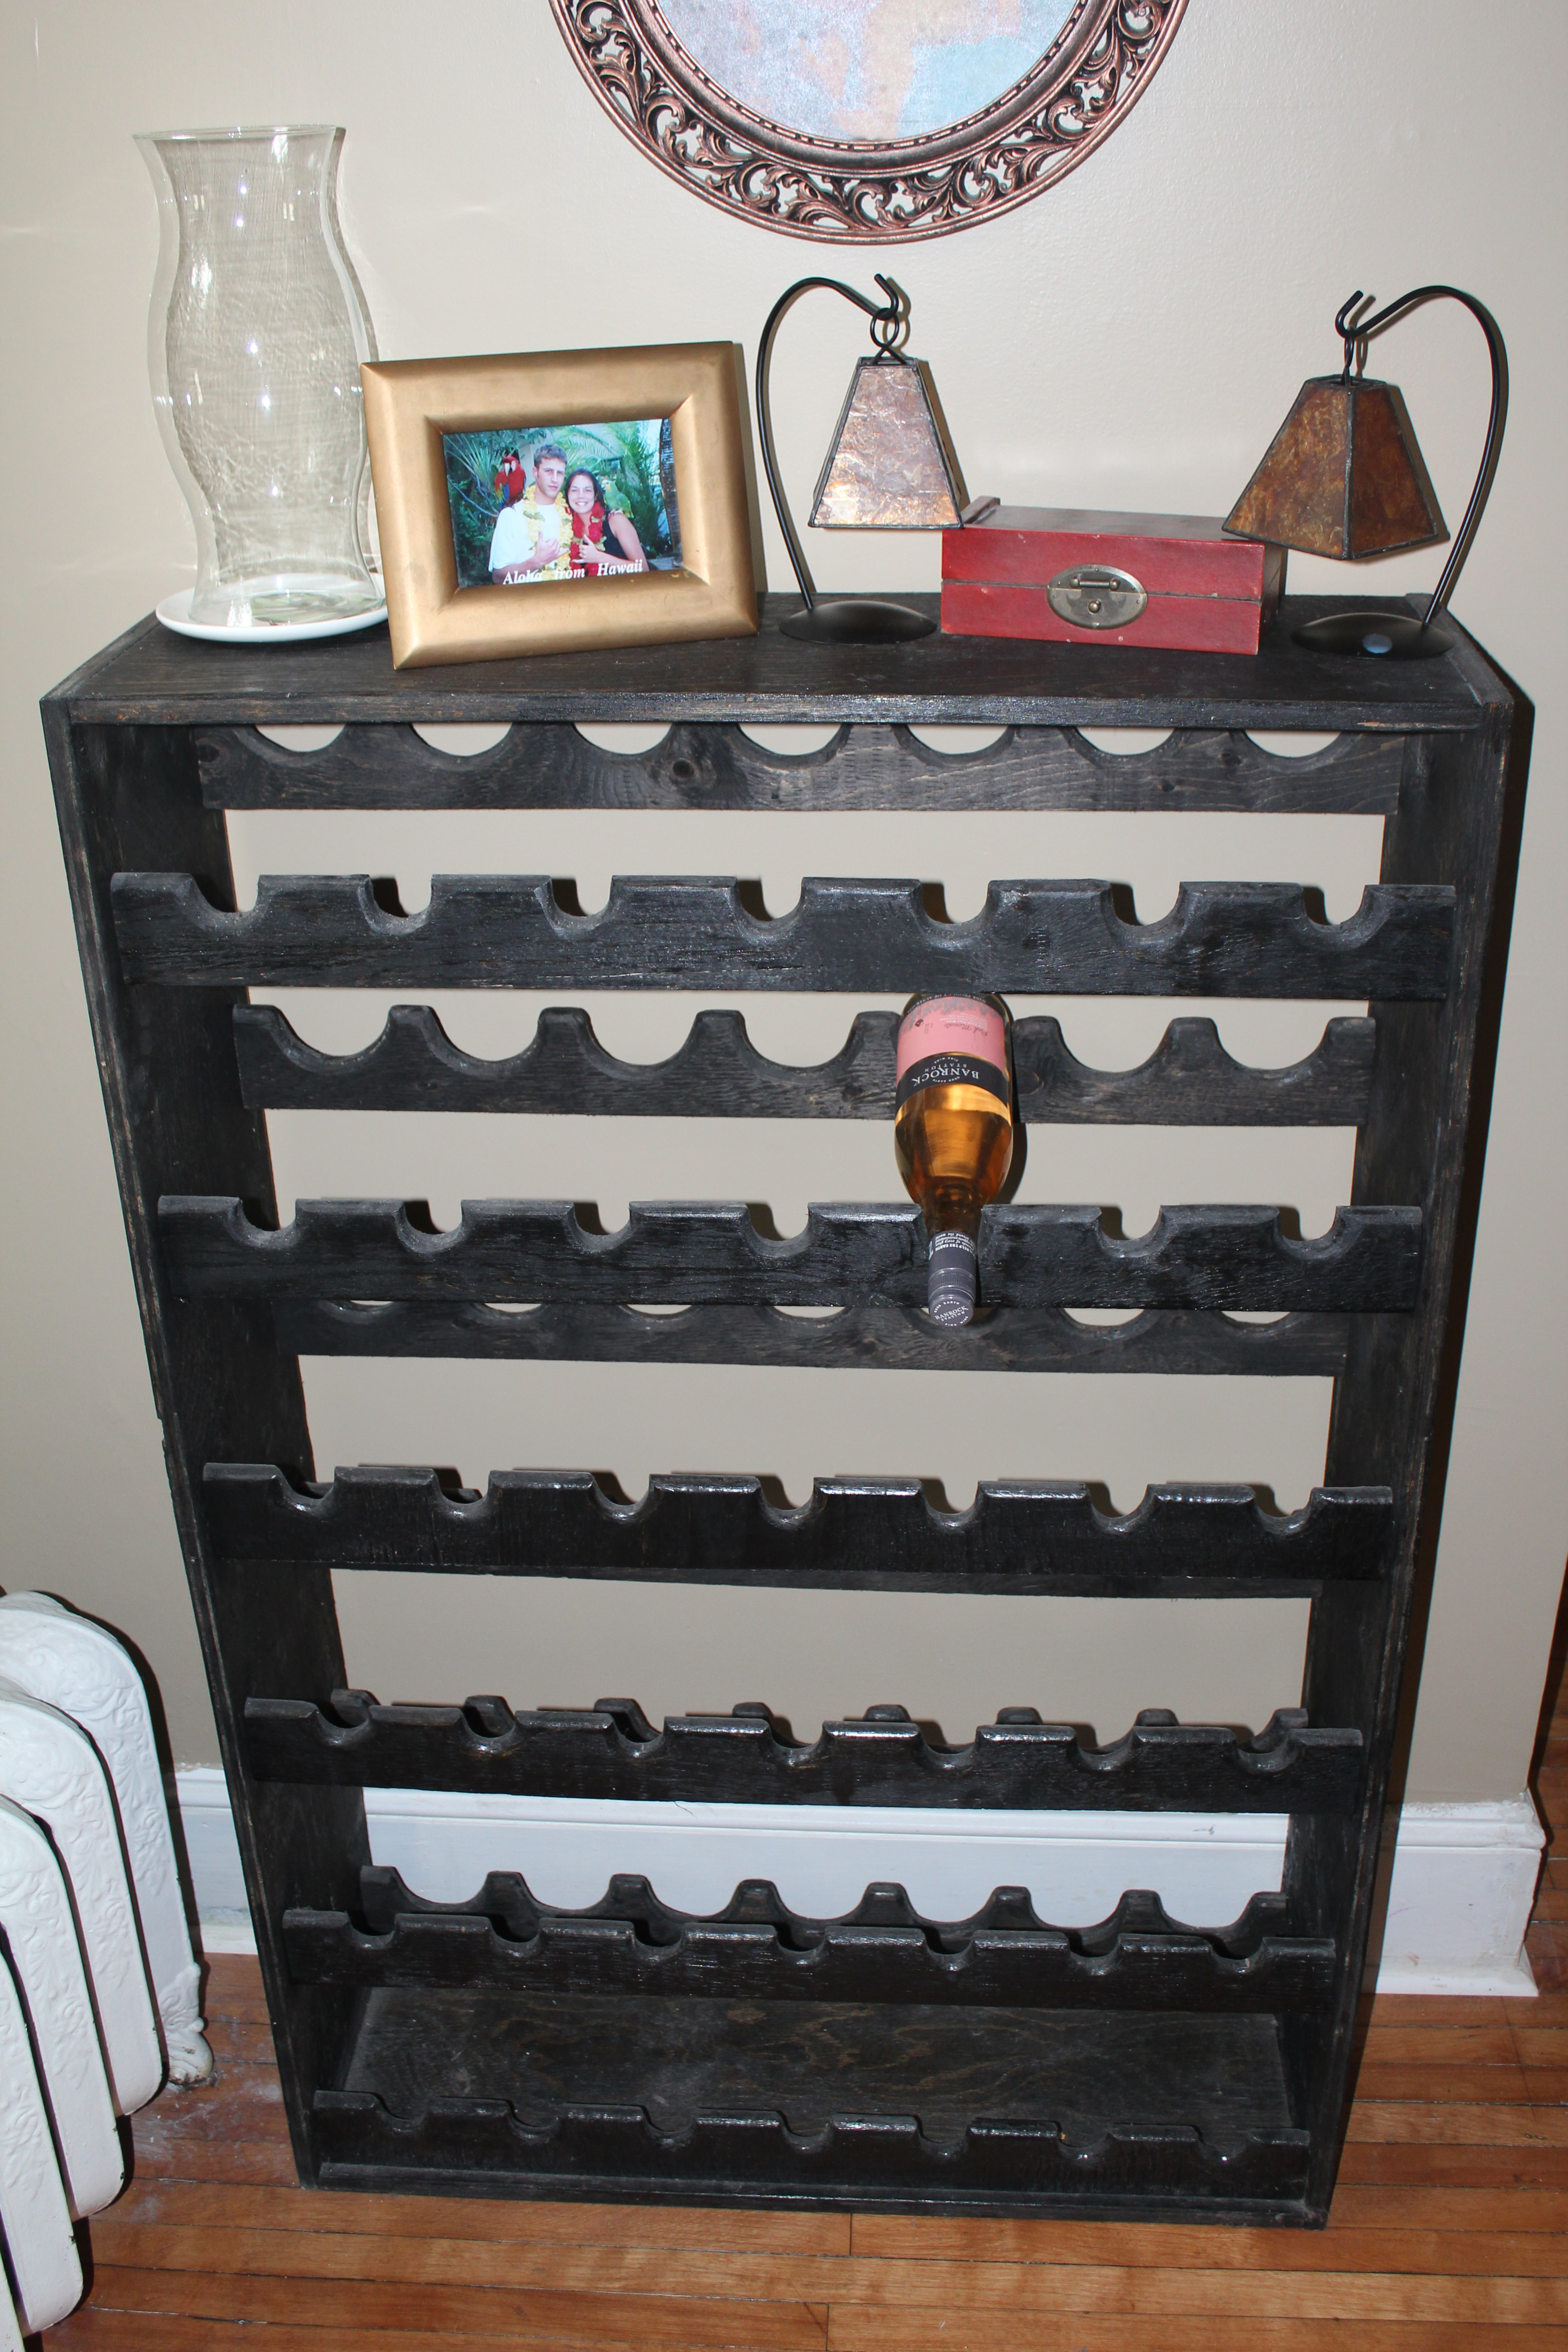 How To Make A Wine Rack How To Make Your Own Wine Rack The Project Maker